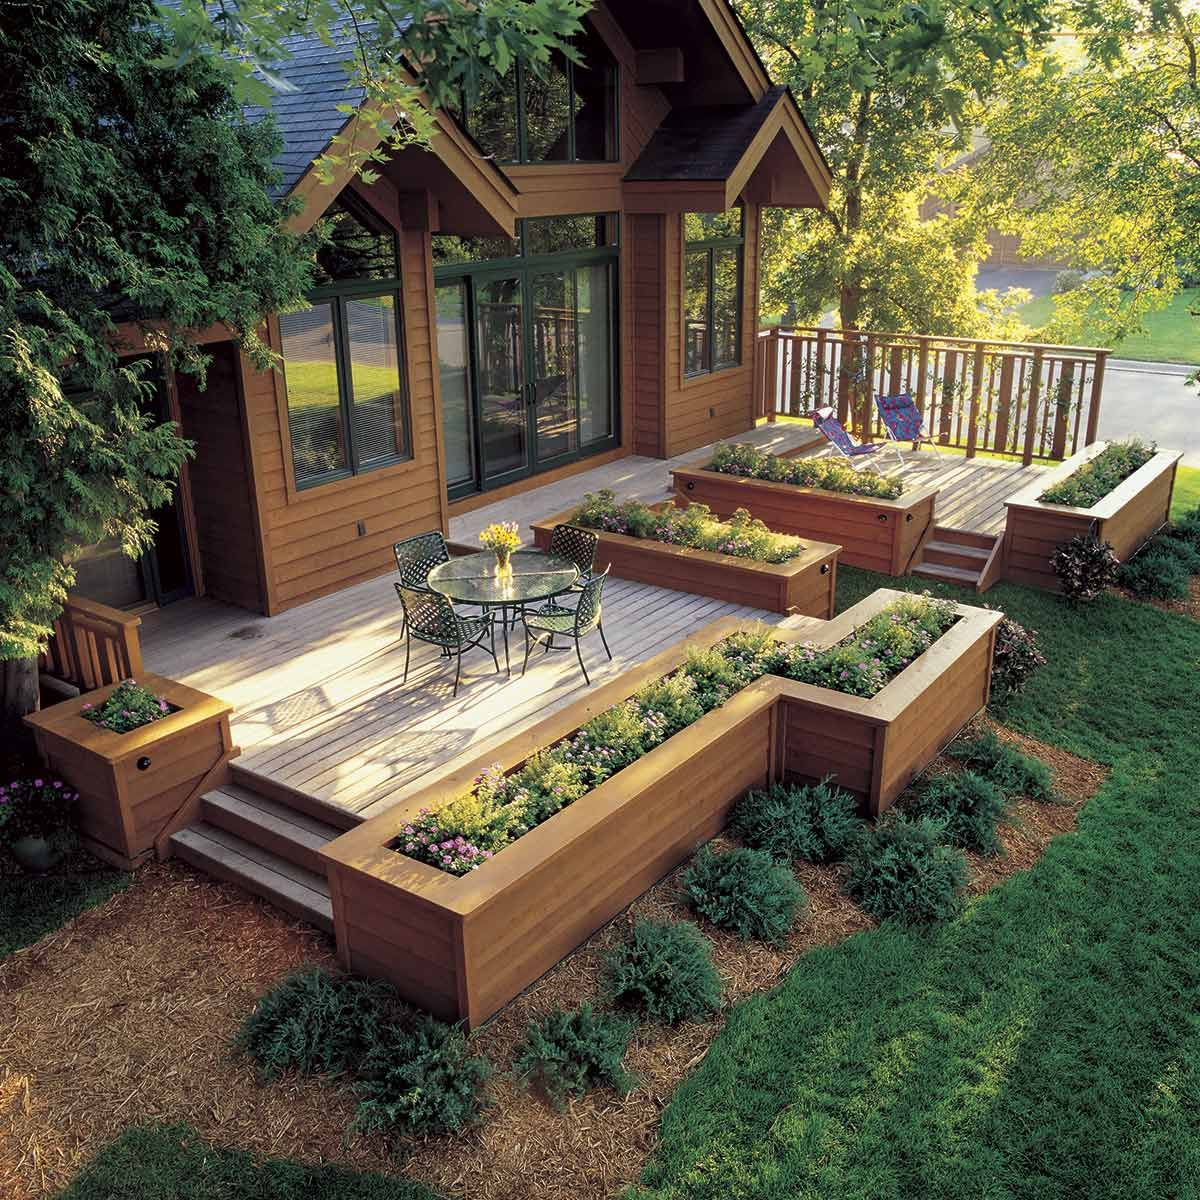 14 DIY Deck Add-Ons That are Seriously Cool | Backyard ... on Add On Patio Ideas  id=81417